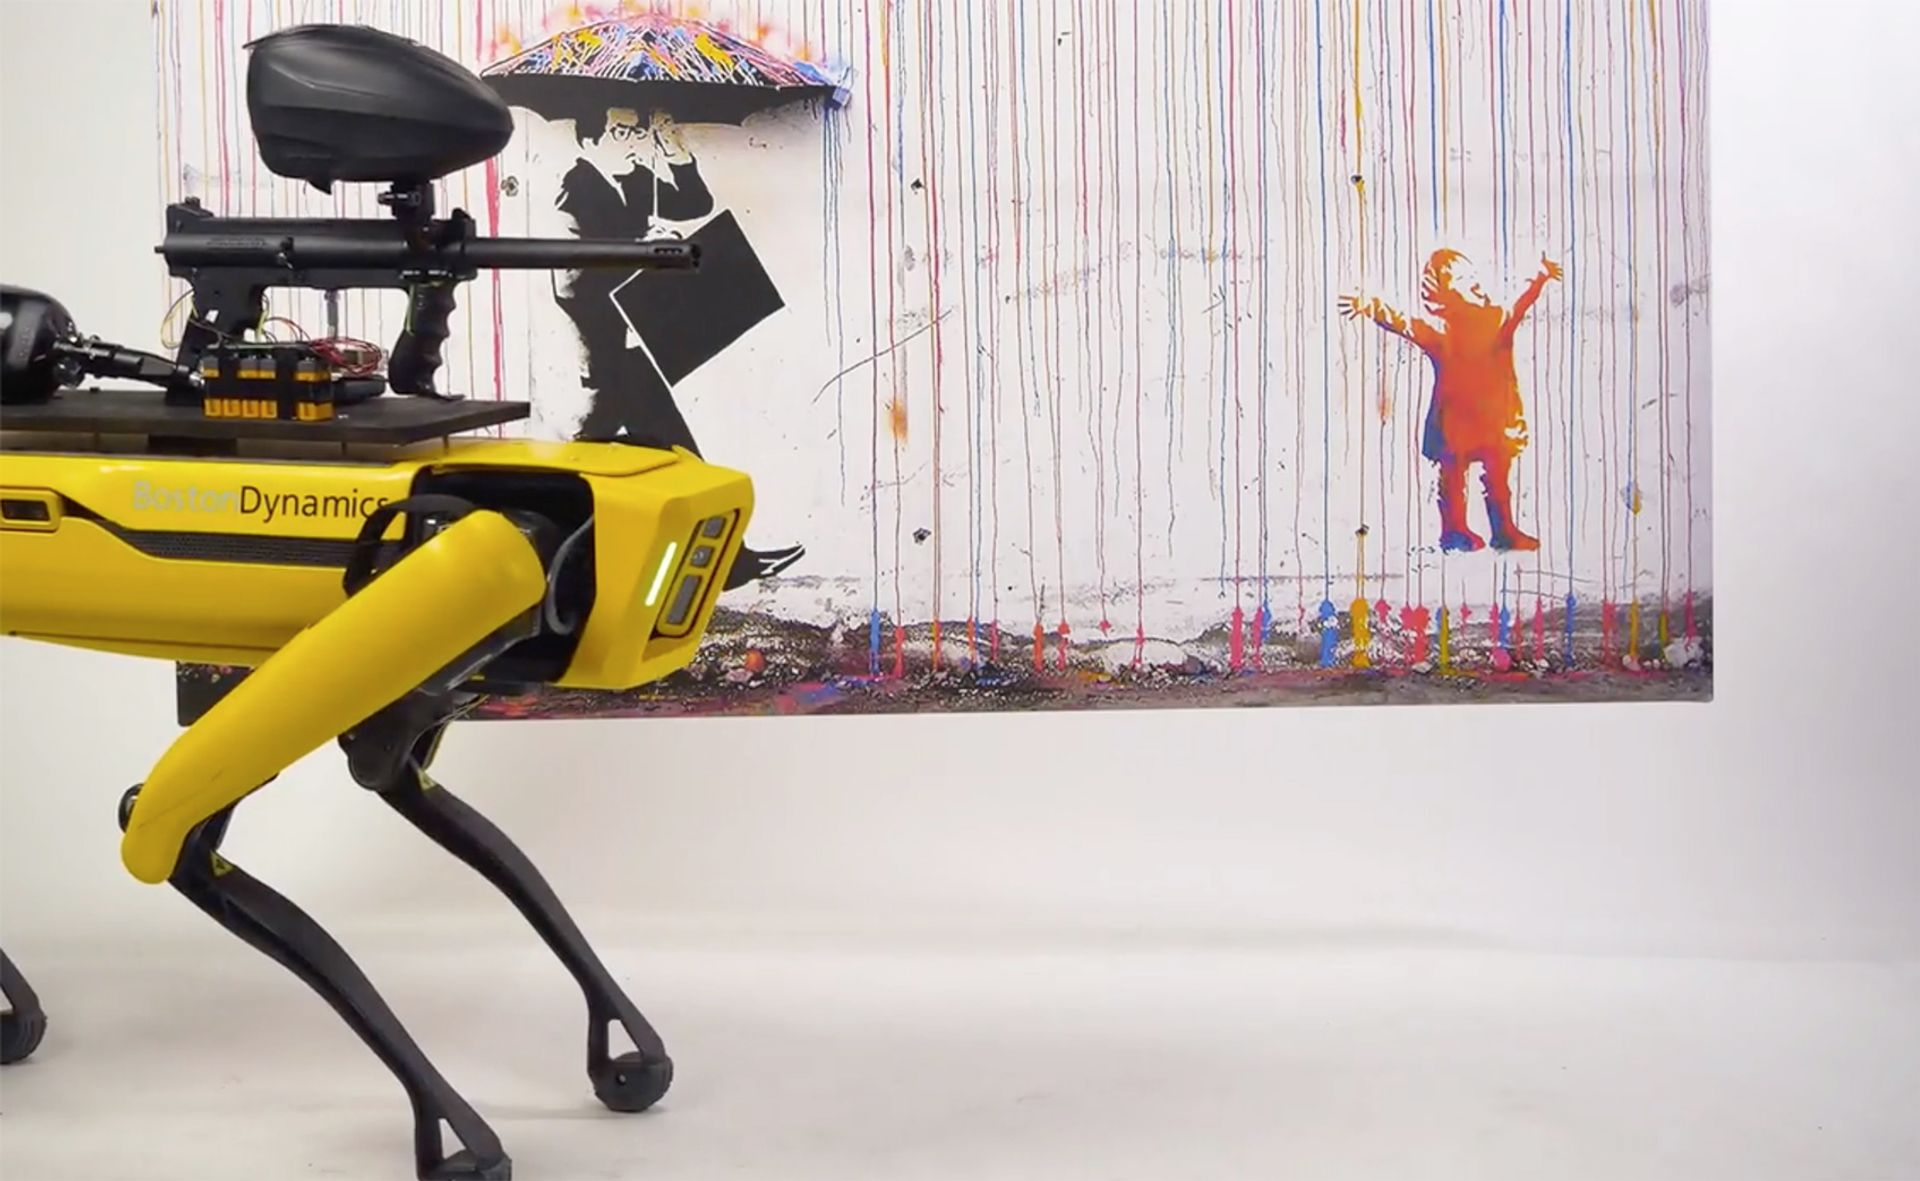 The robot dog Spot has been let loose in an art gallery Courtesy of MSCHF